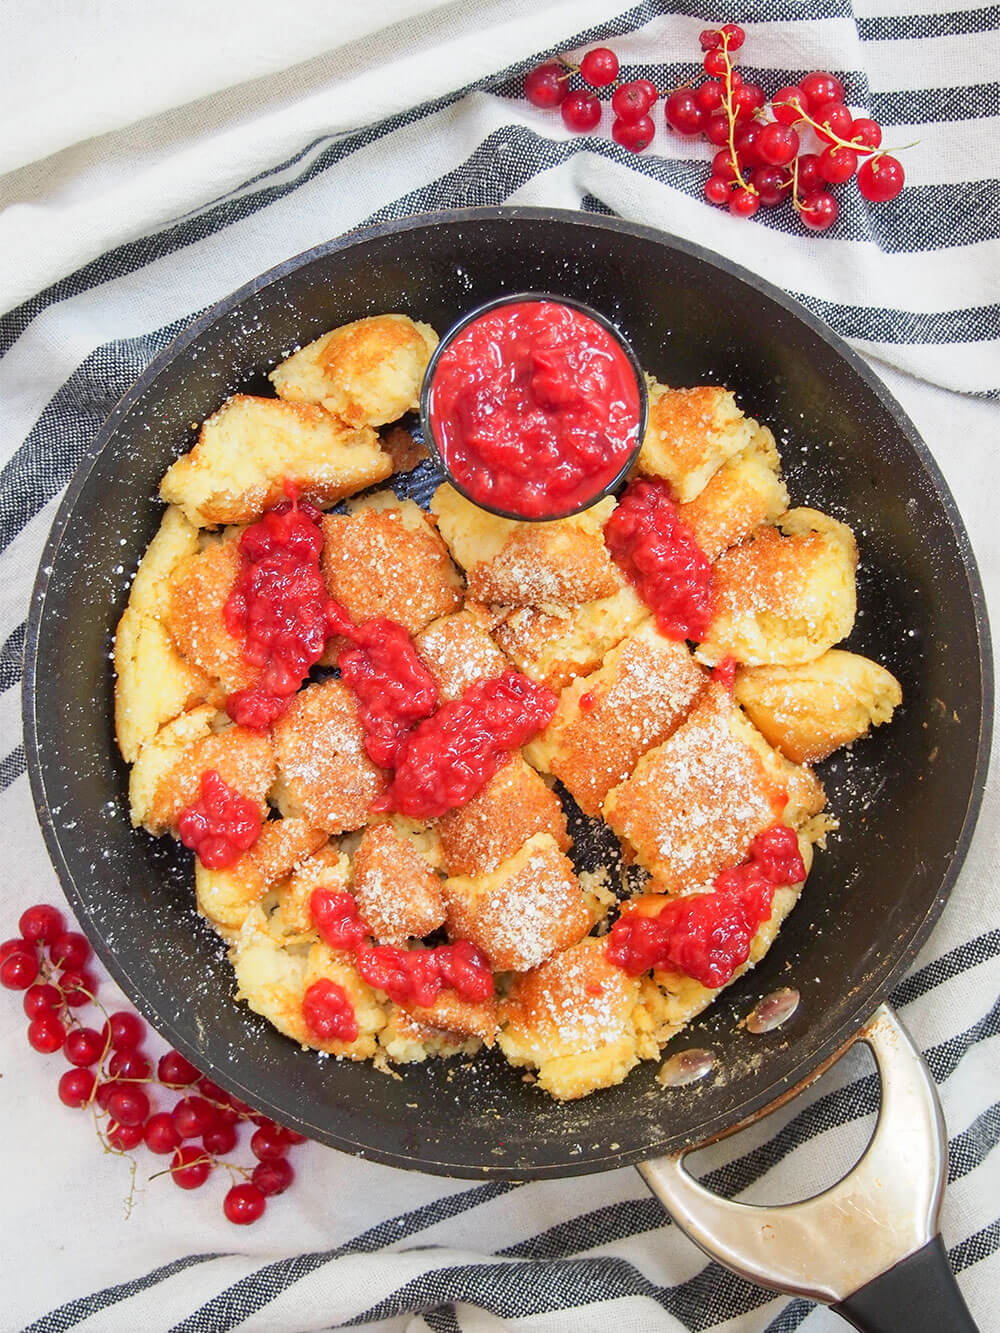 Kaiserschmarrn (Austrian torn pancakes) from above with compote drizzled over